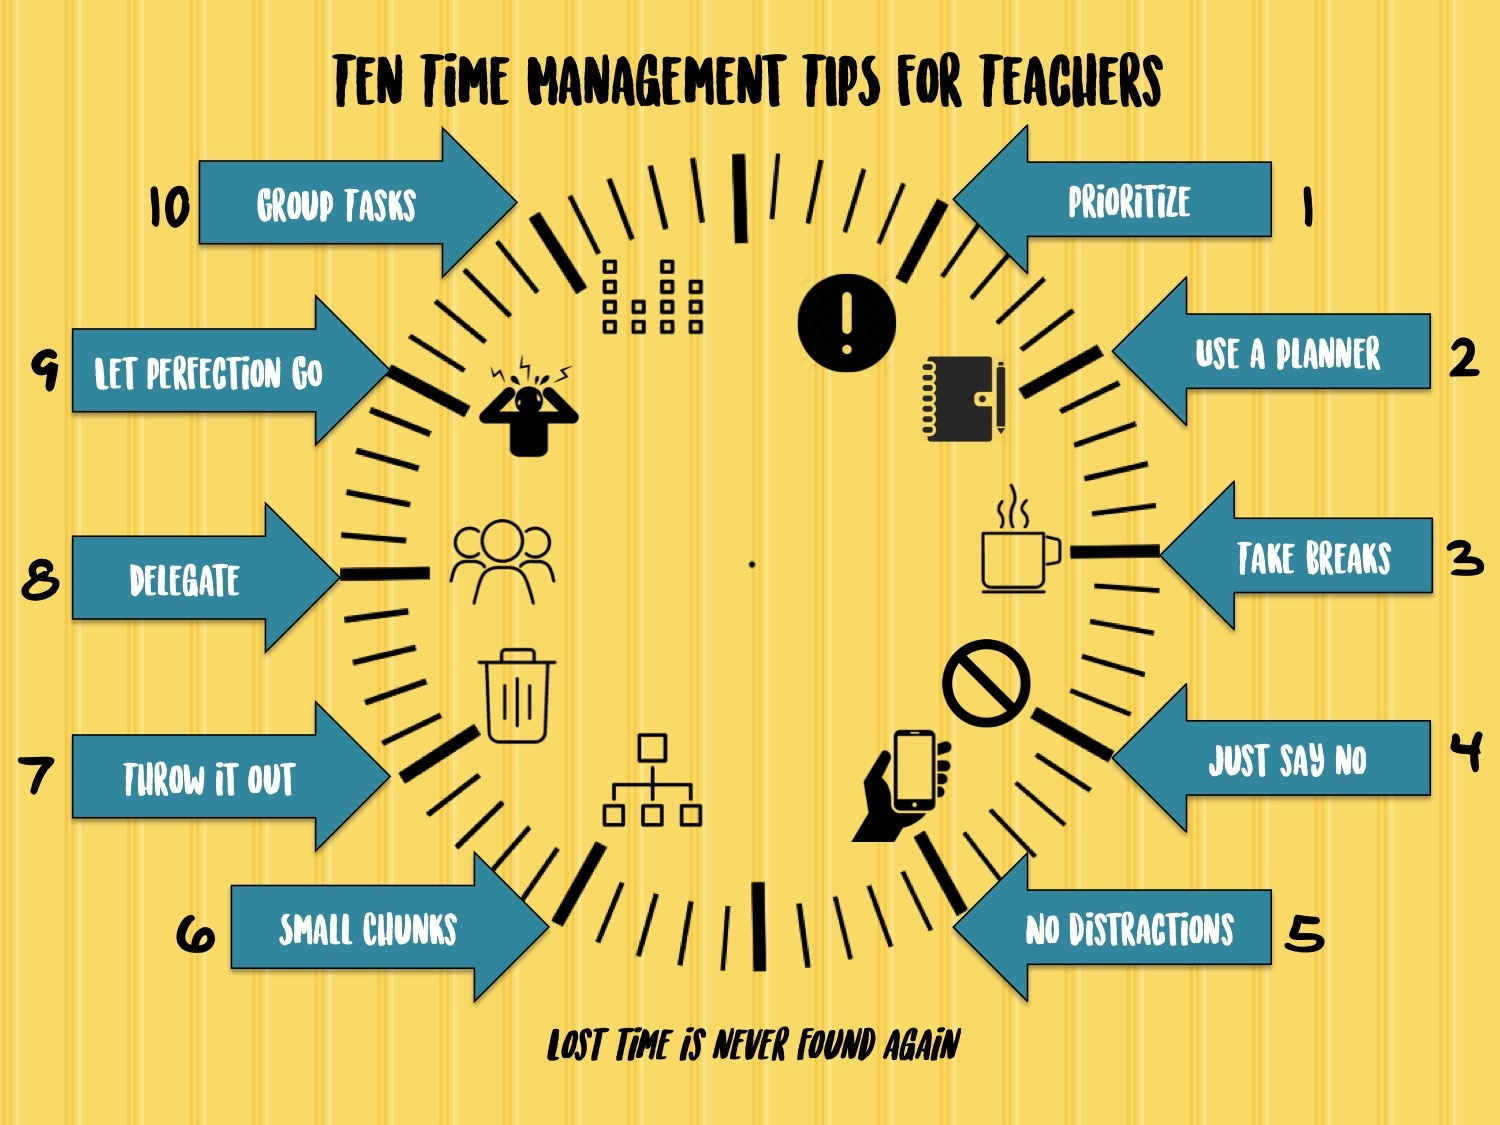 How to Manage Time With 10 Tips That Work  Time Management Tips